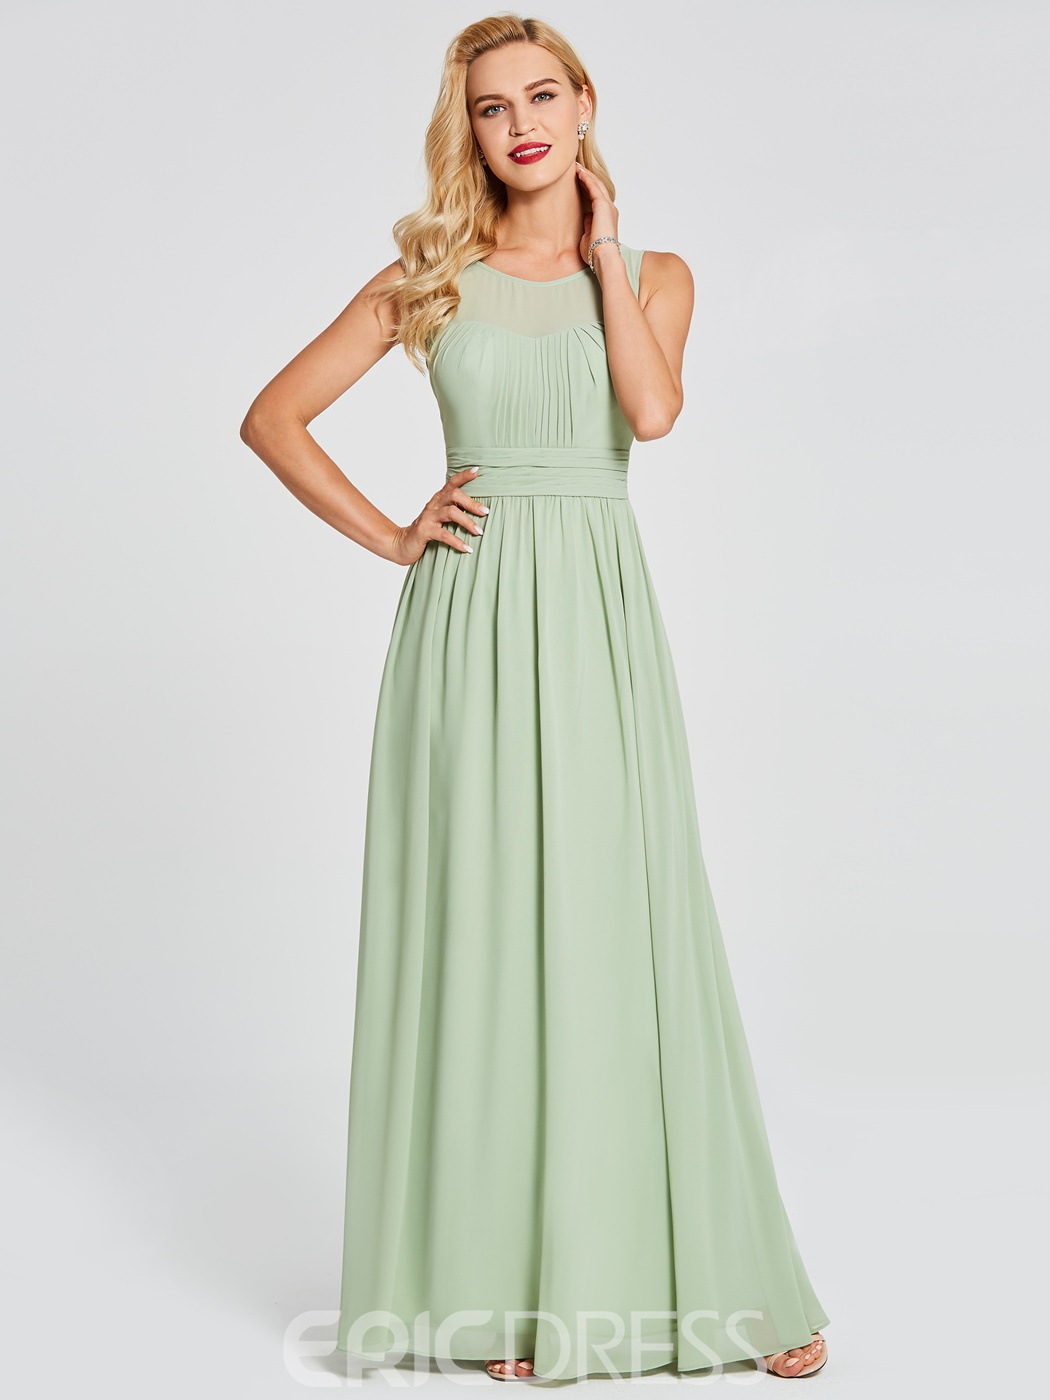 Ericdress scoop a line chiffon long bridesmaid dress 12945042 ericdress scoop a line chiffon long bridesmaid dress ombrellifo Choice Image